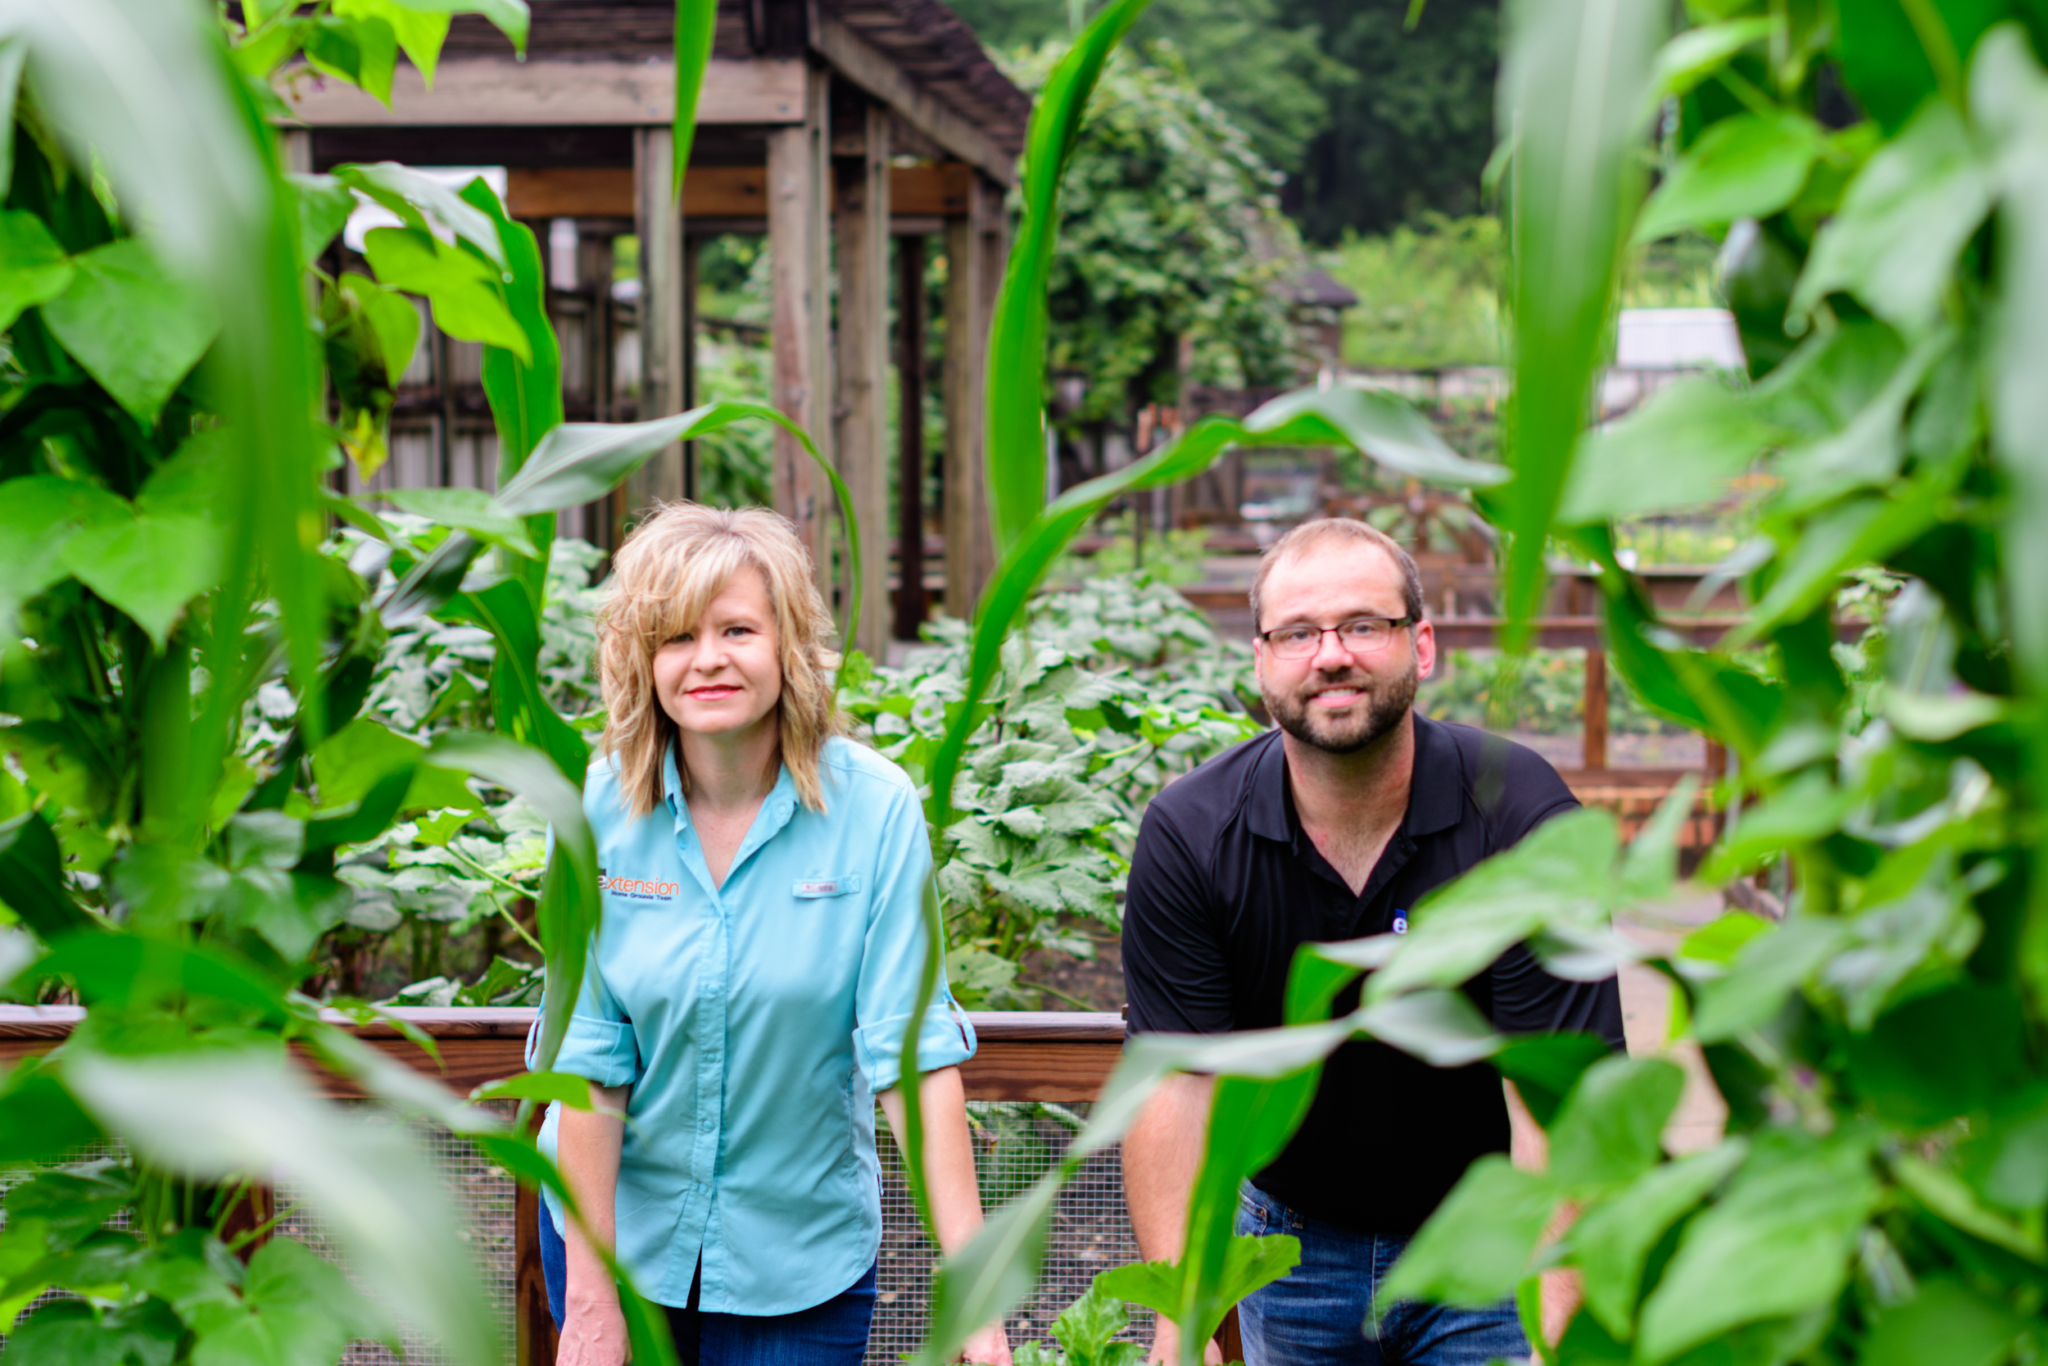 7 steps to start your fall garden now, with help from Alabama Extension